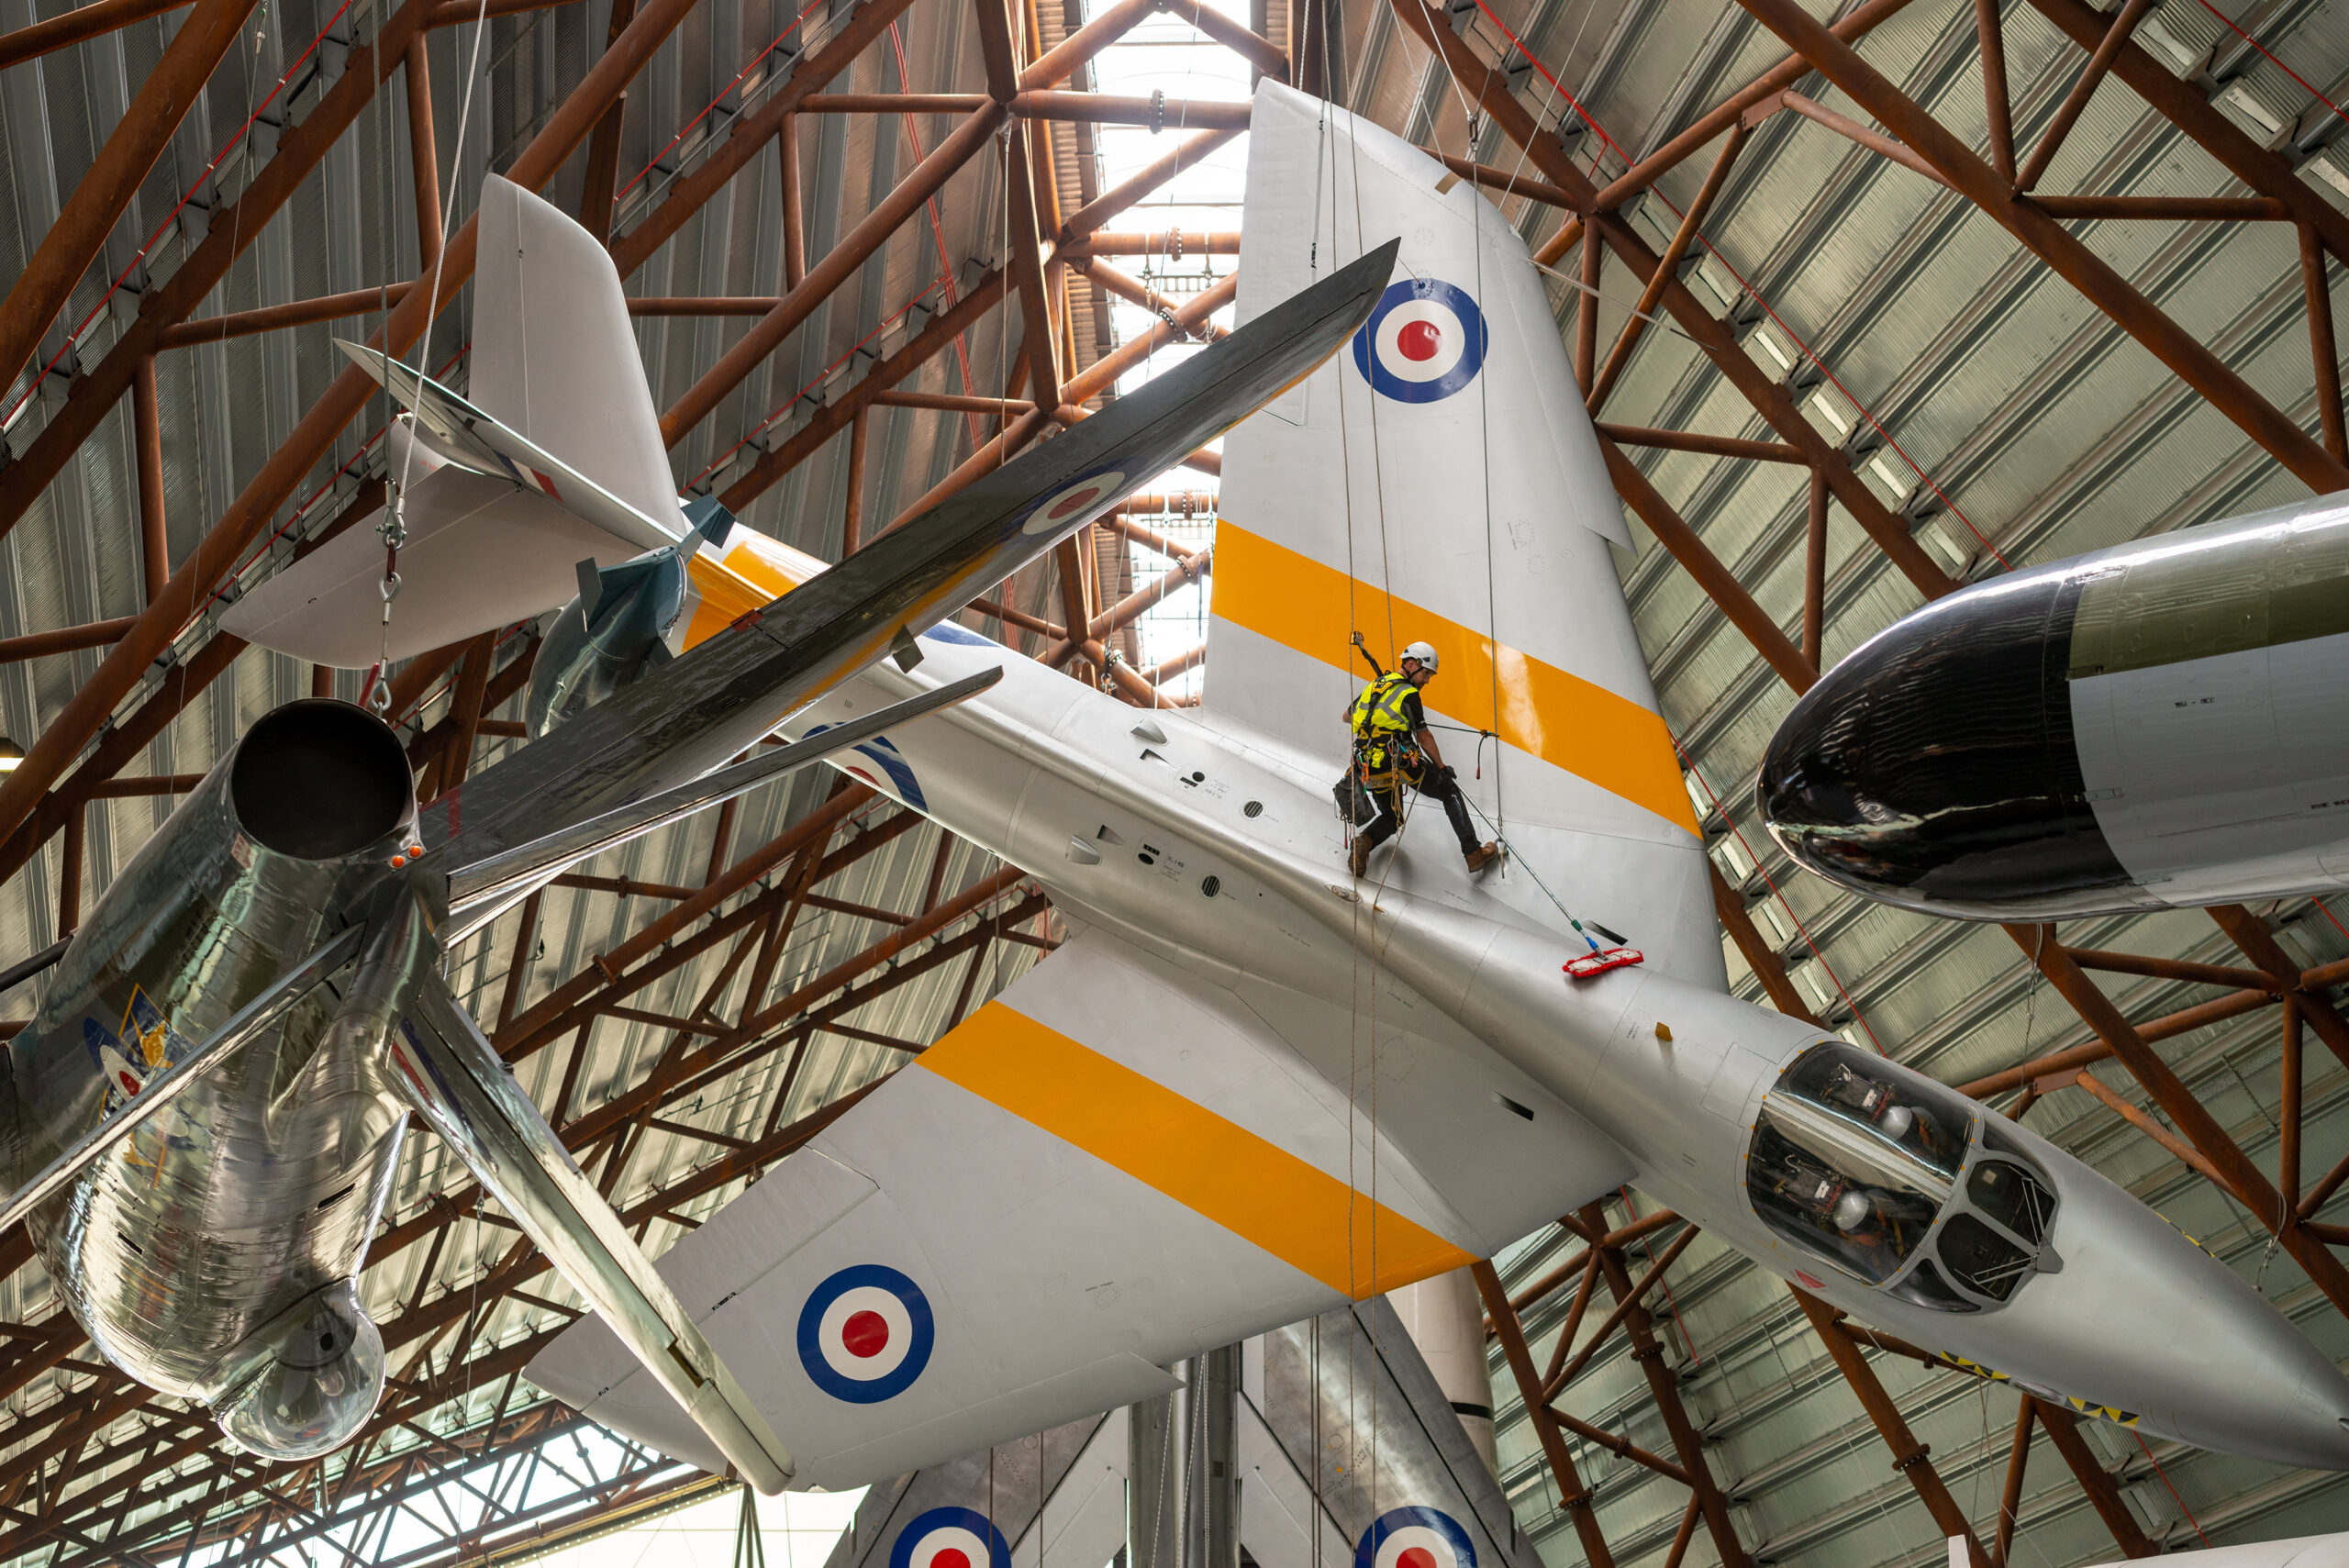 Aircraft at RAF museum get a spring clean